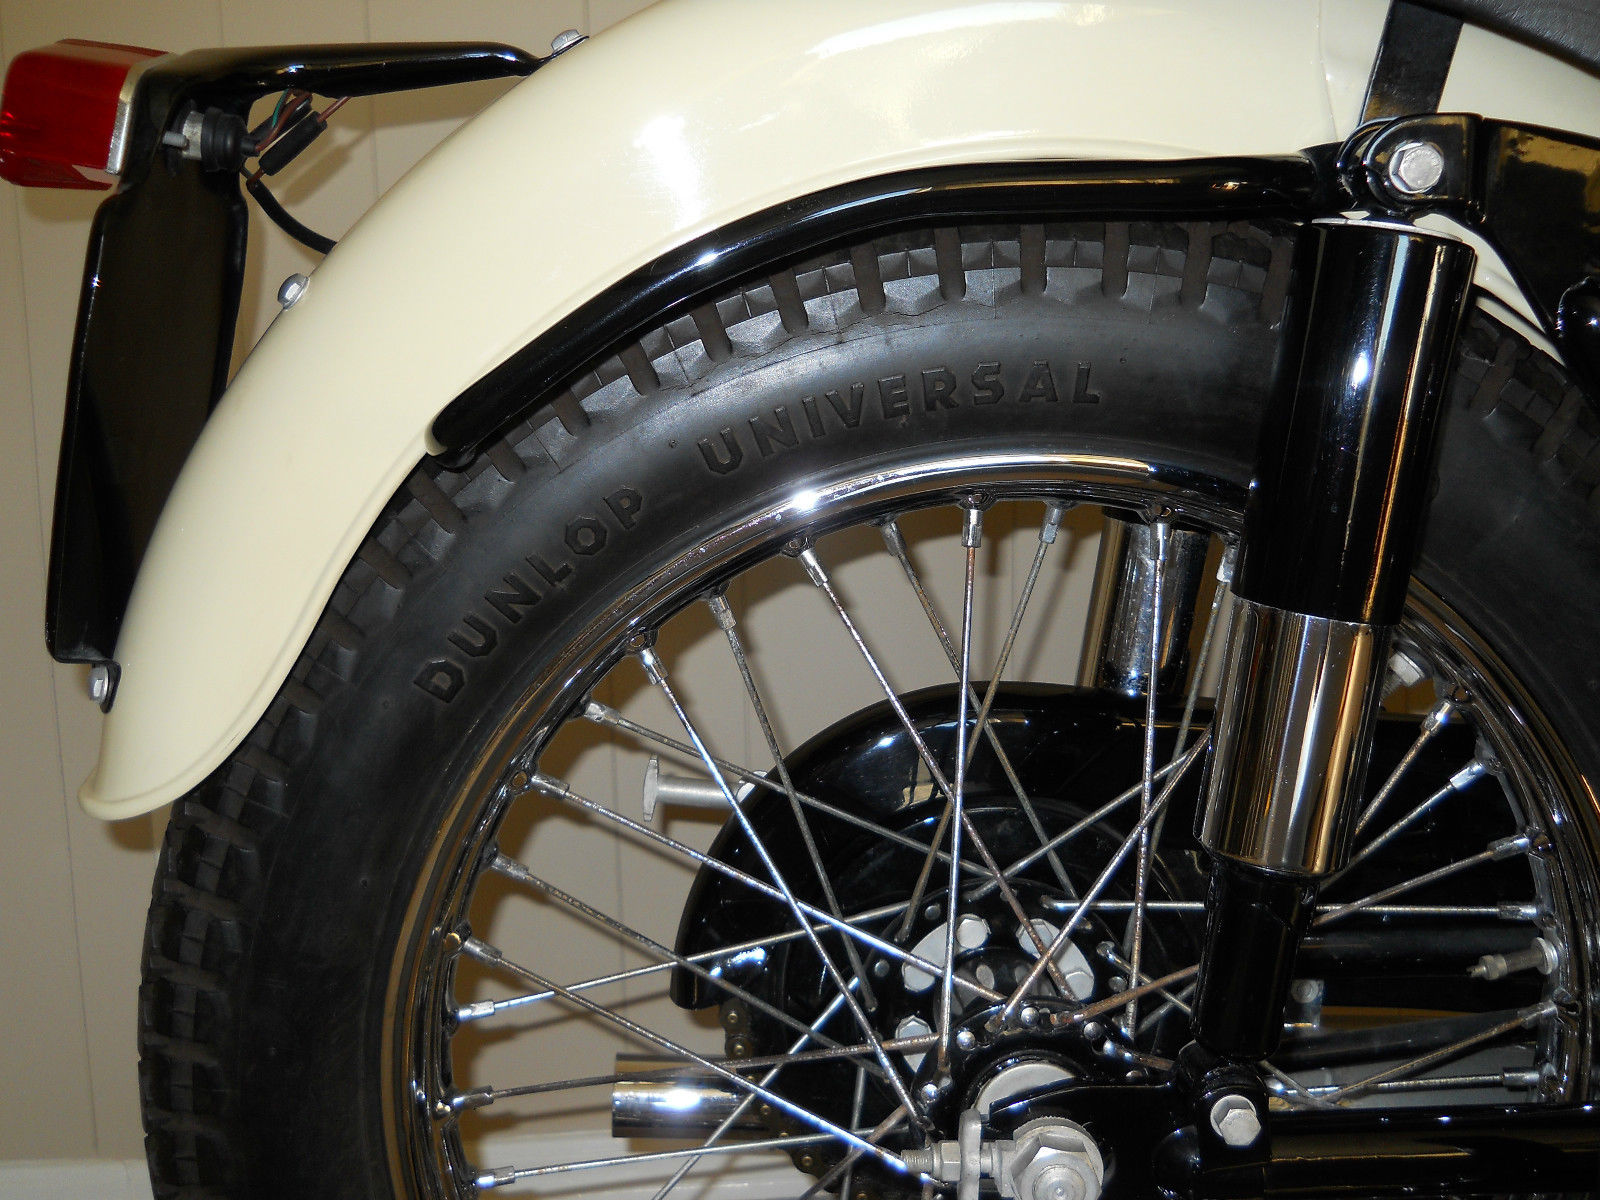 Triumph Tiger T110 - 1958 - Rear Wheel, Dunlop Tyre, Spokes and Fender.